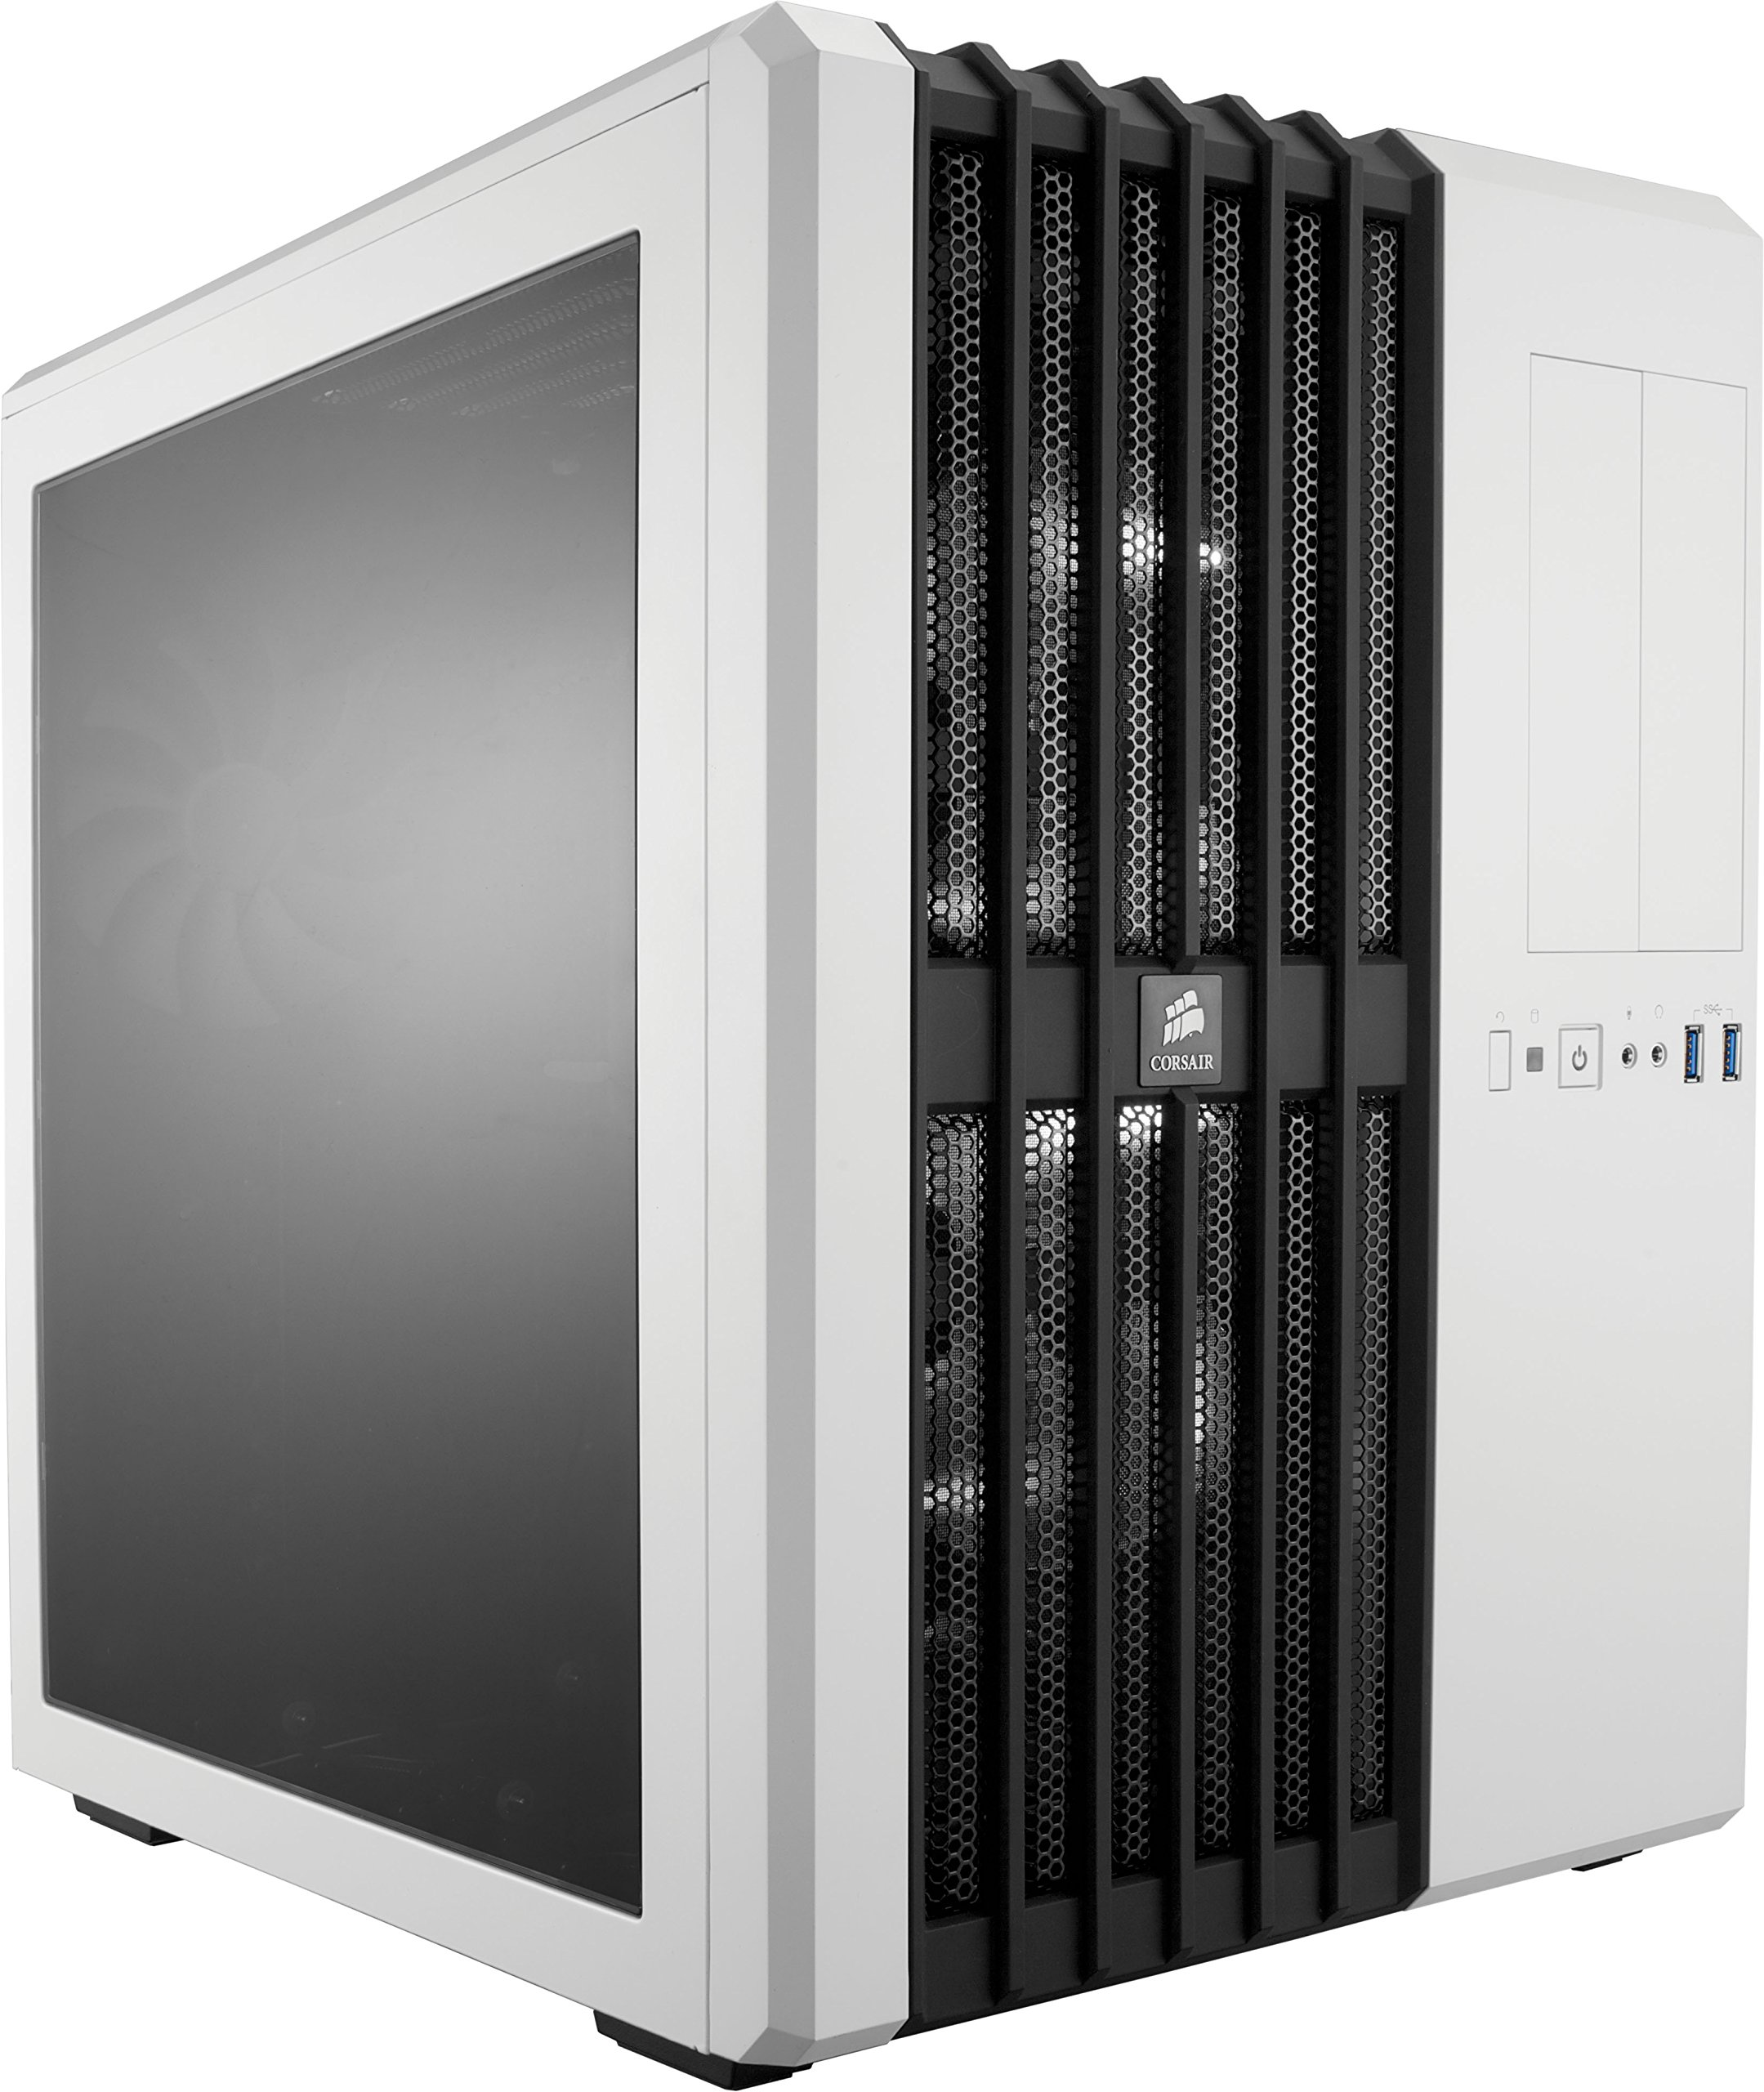 Corsair Carbide Series Air 540 Windowed ATX High Airflow Cube Performance Computer Case with White LED Fan - Arctic White